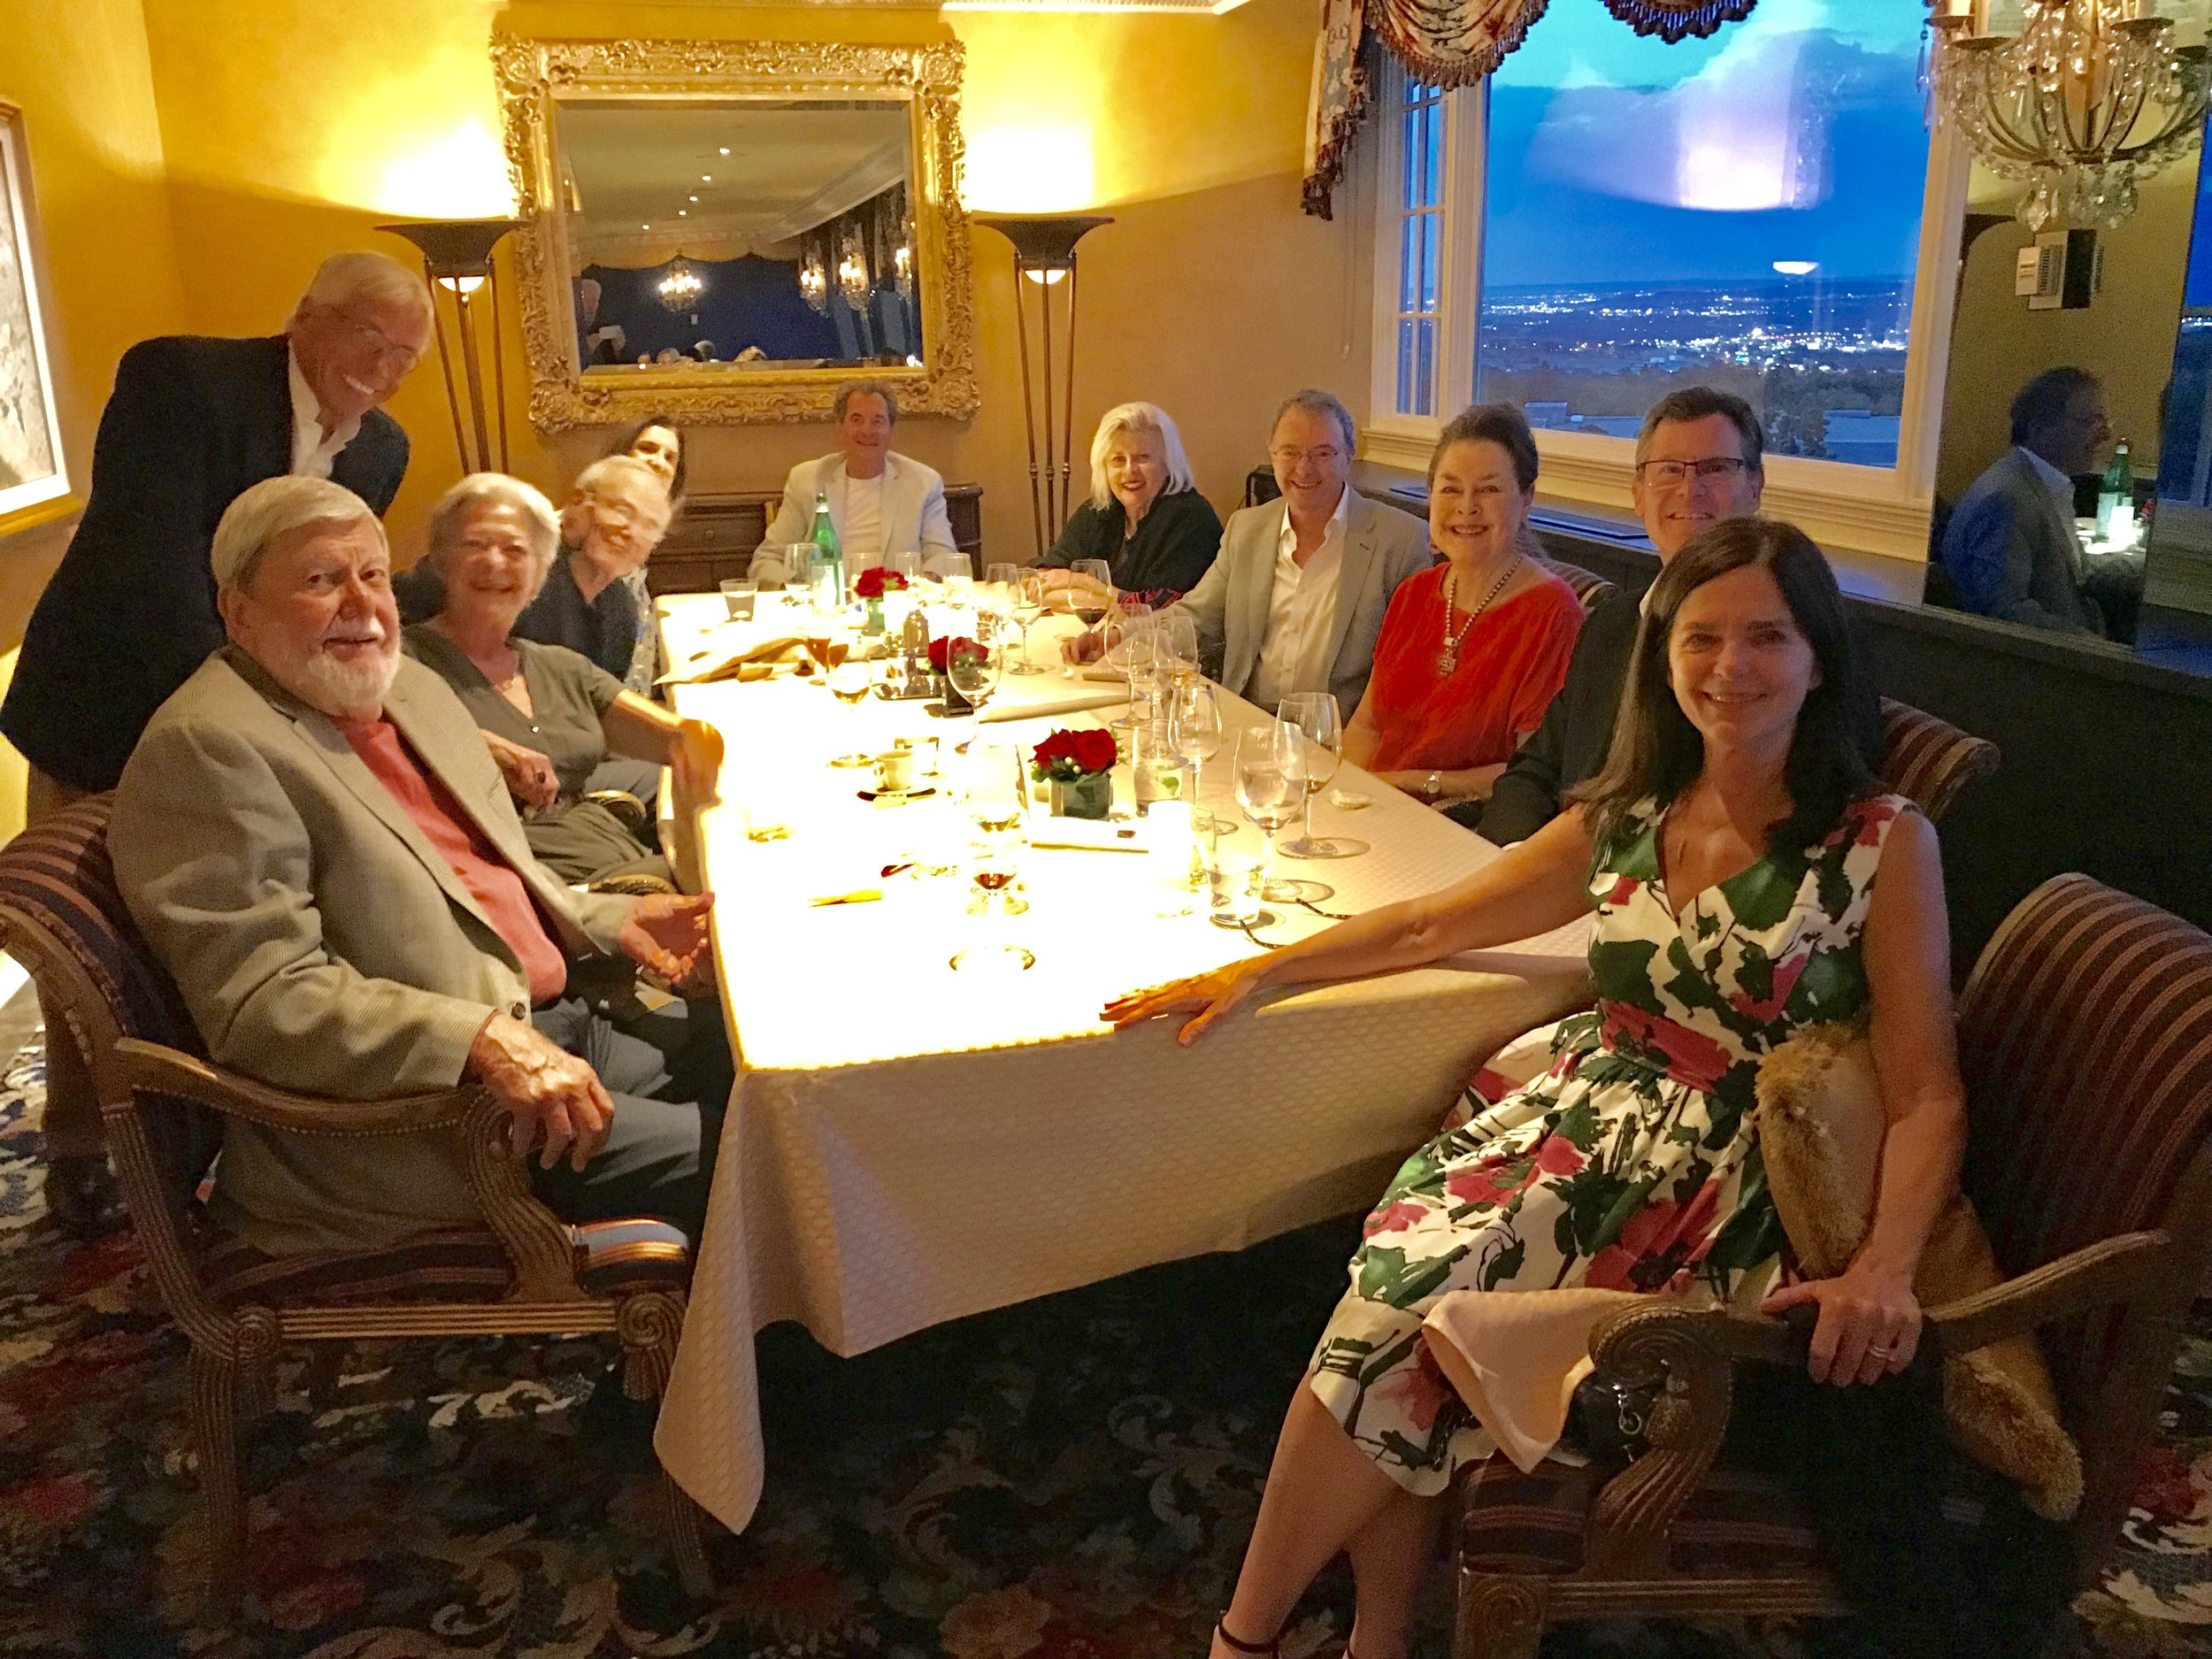 Don Howarth, Suzelle M. Smith, Julie and Bob Finnerty, Jackie Perry, Bob and Lyn Parks, Paul Sreenan, and Dicky and Mary Gay Grigg.  Penrose Room Broadmoor, IATL Meeting Colorado Springs, July 2018